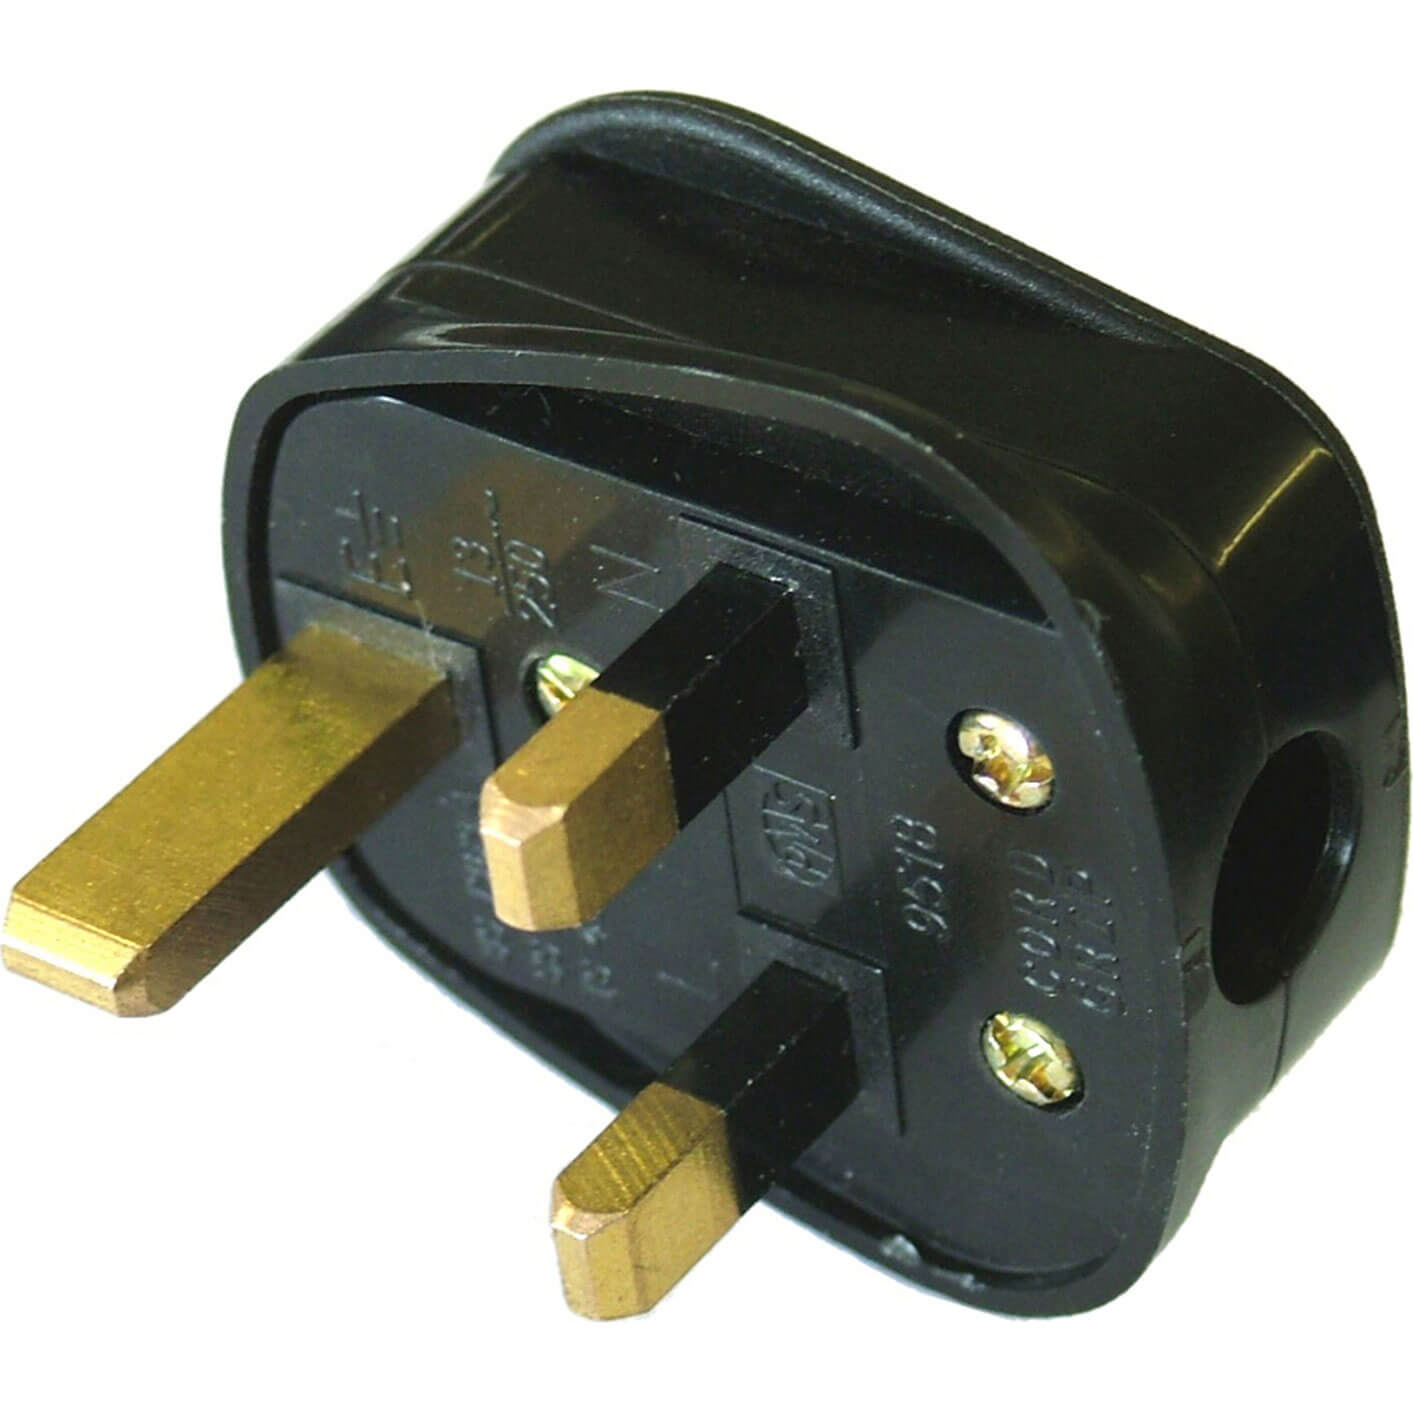 Faithfull Black Rubber Plug 13amp 240v